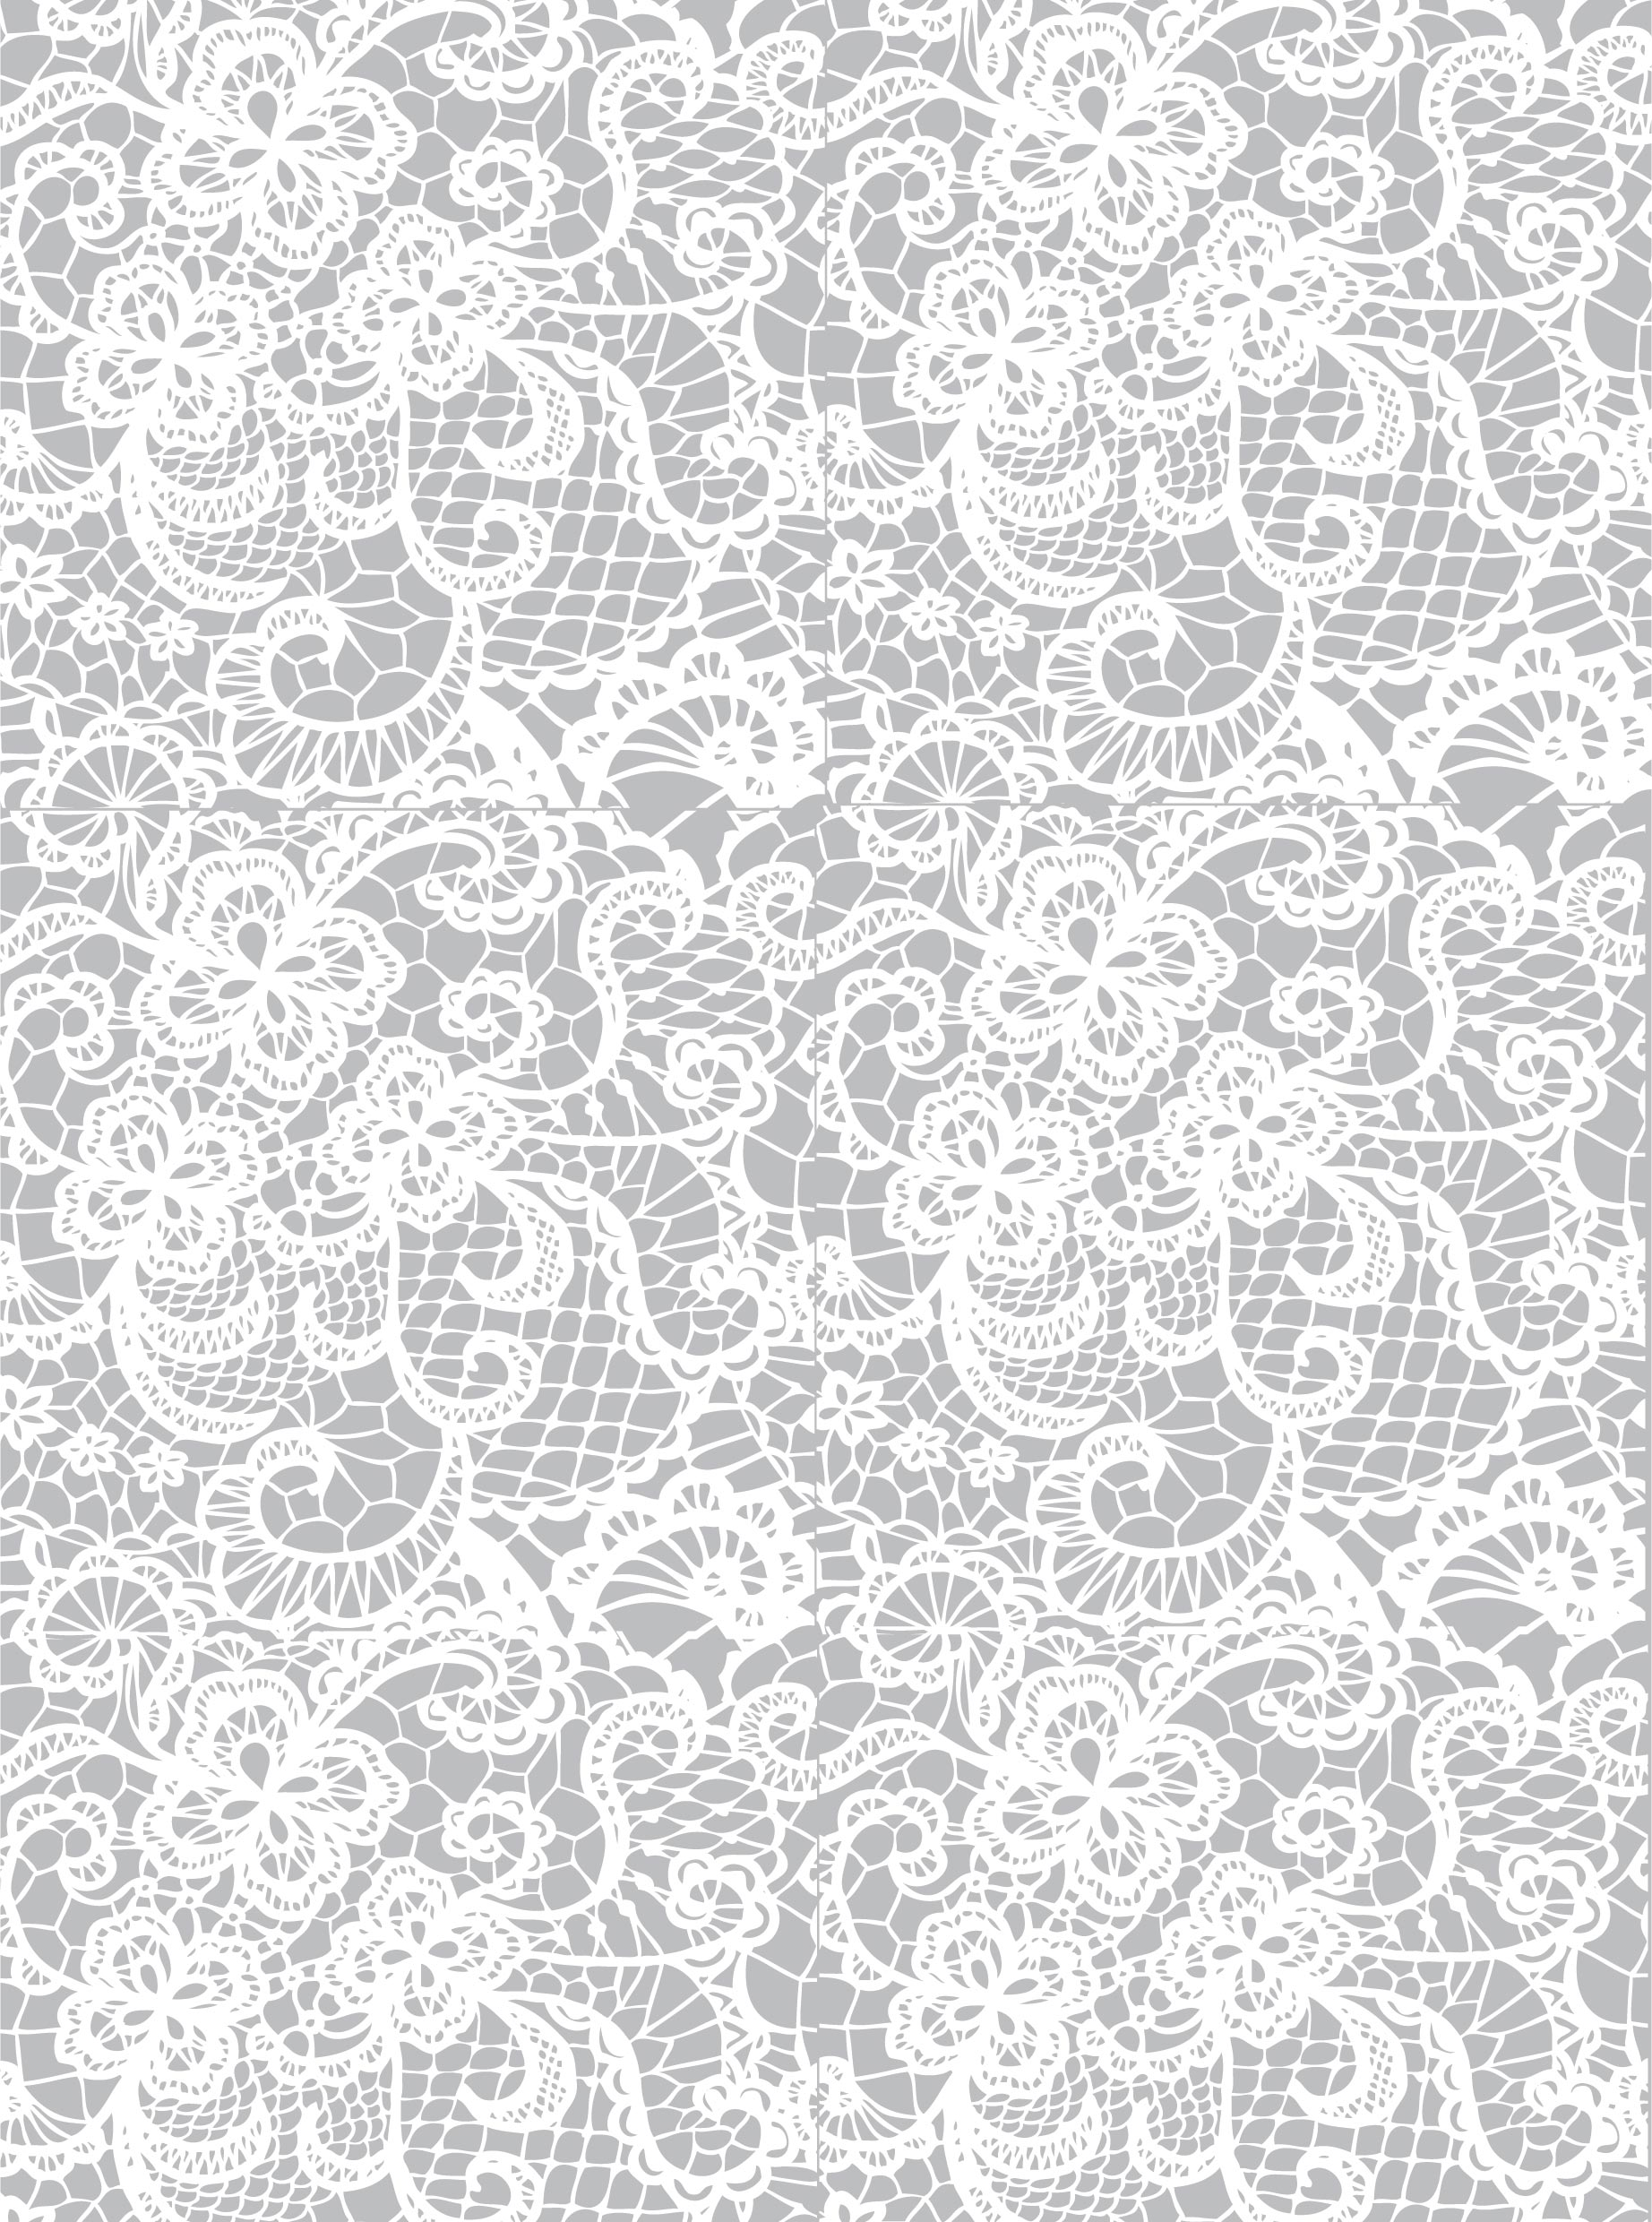 Background #5 (Lace Your Choice of Color)